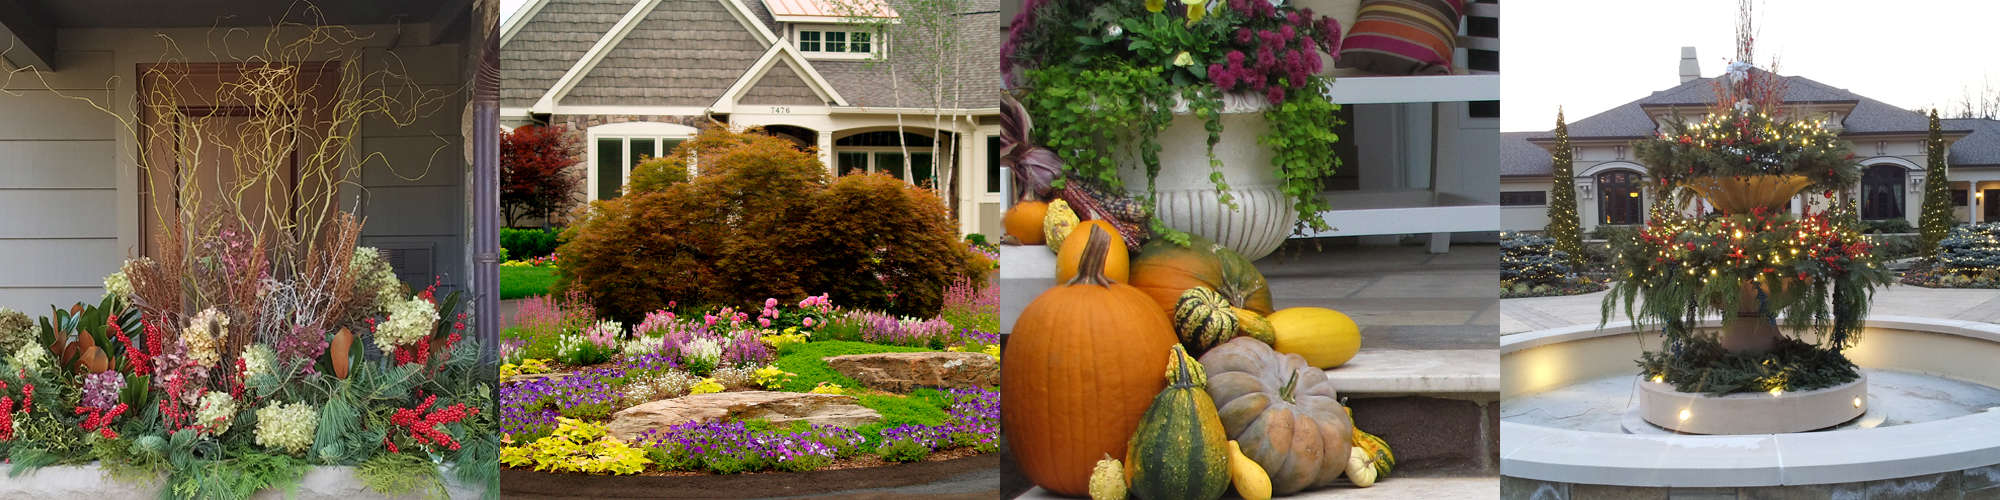 Seasons - Windscapes Landscaping - Landscape Design Grand Rapids MI